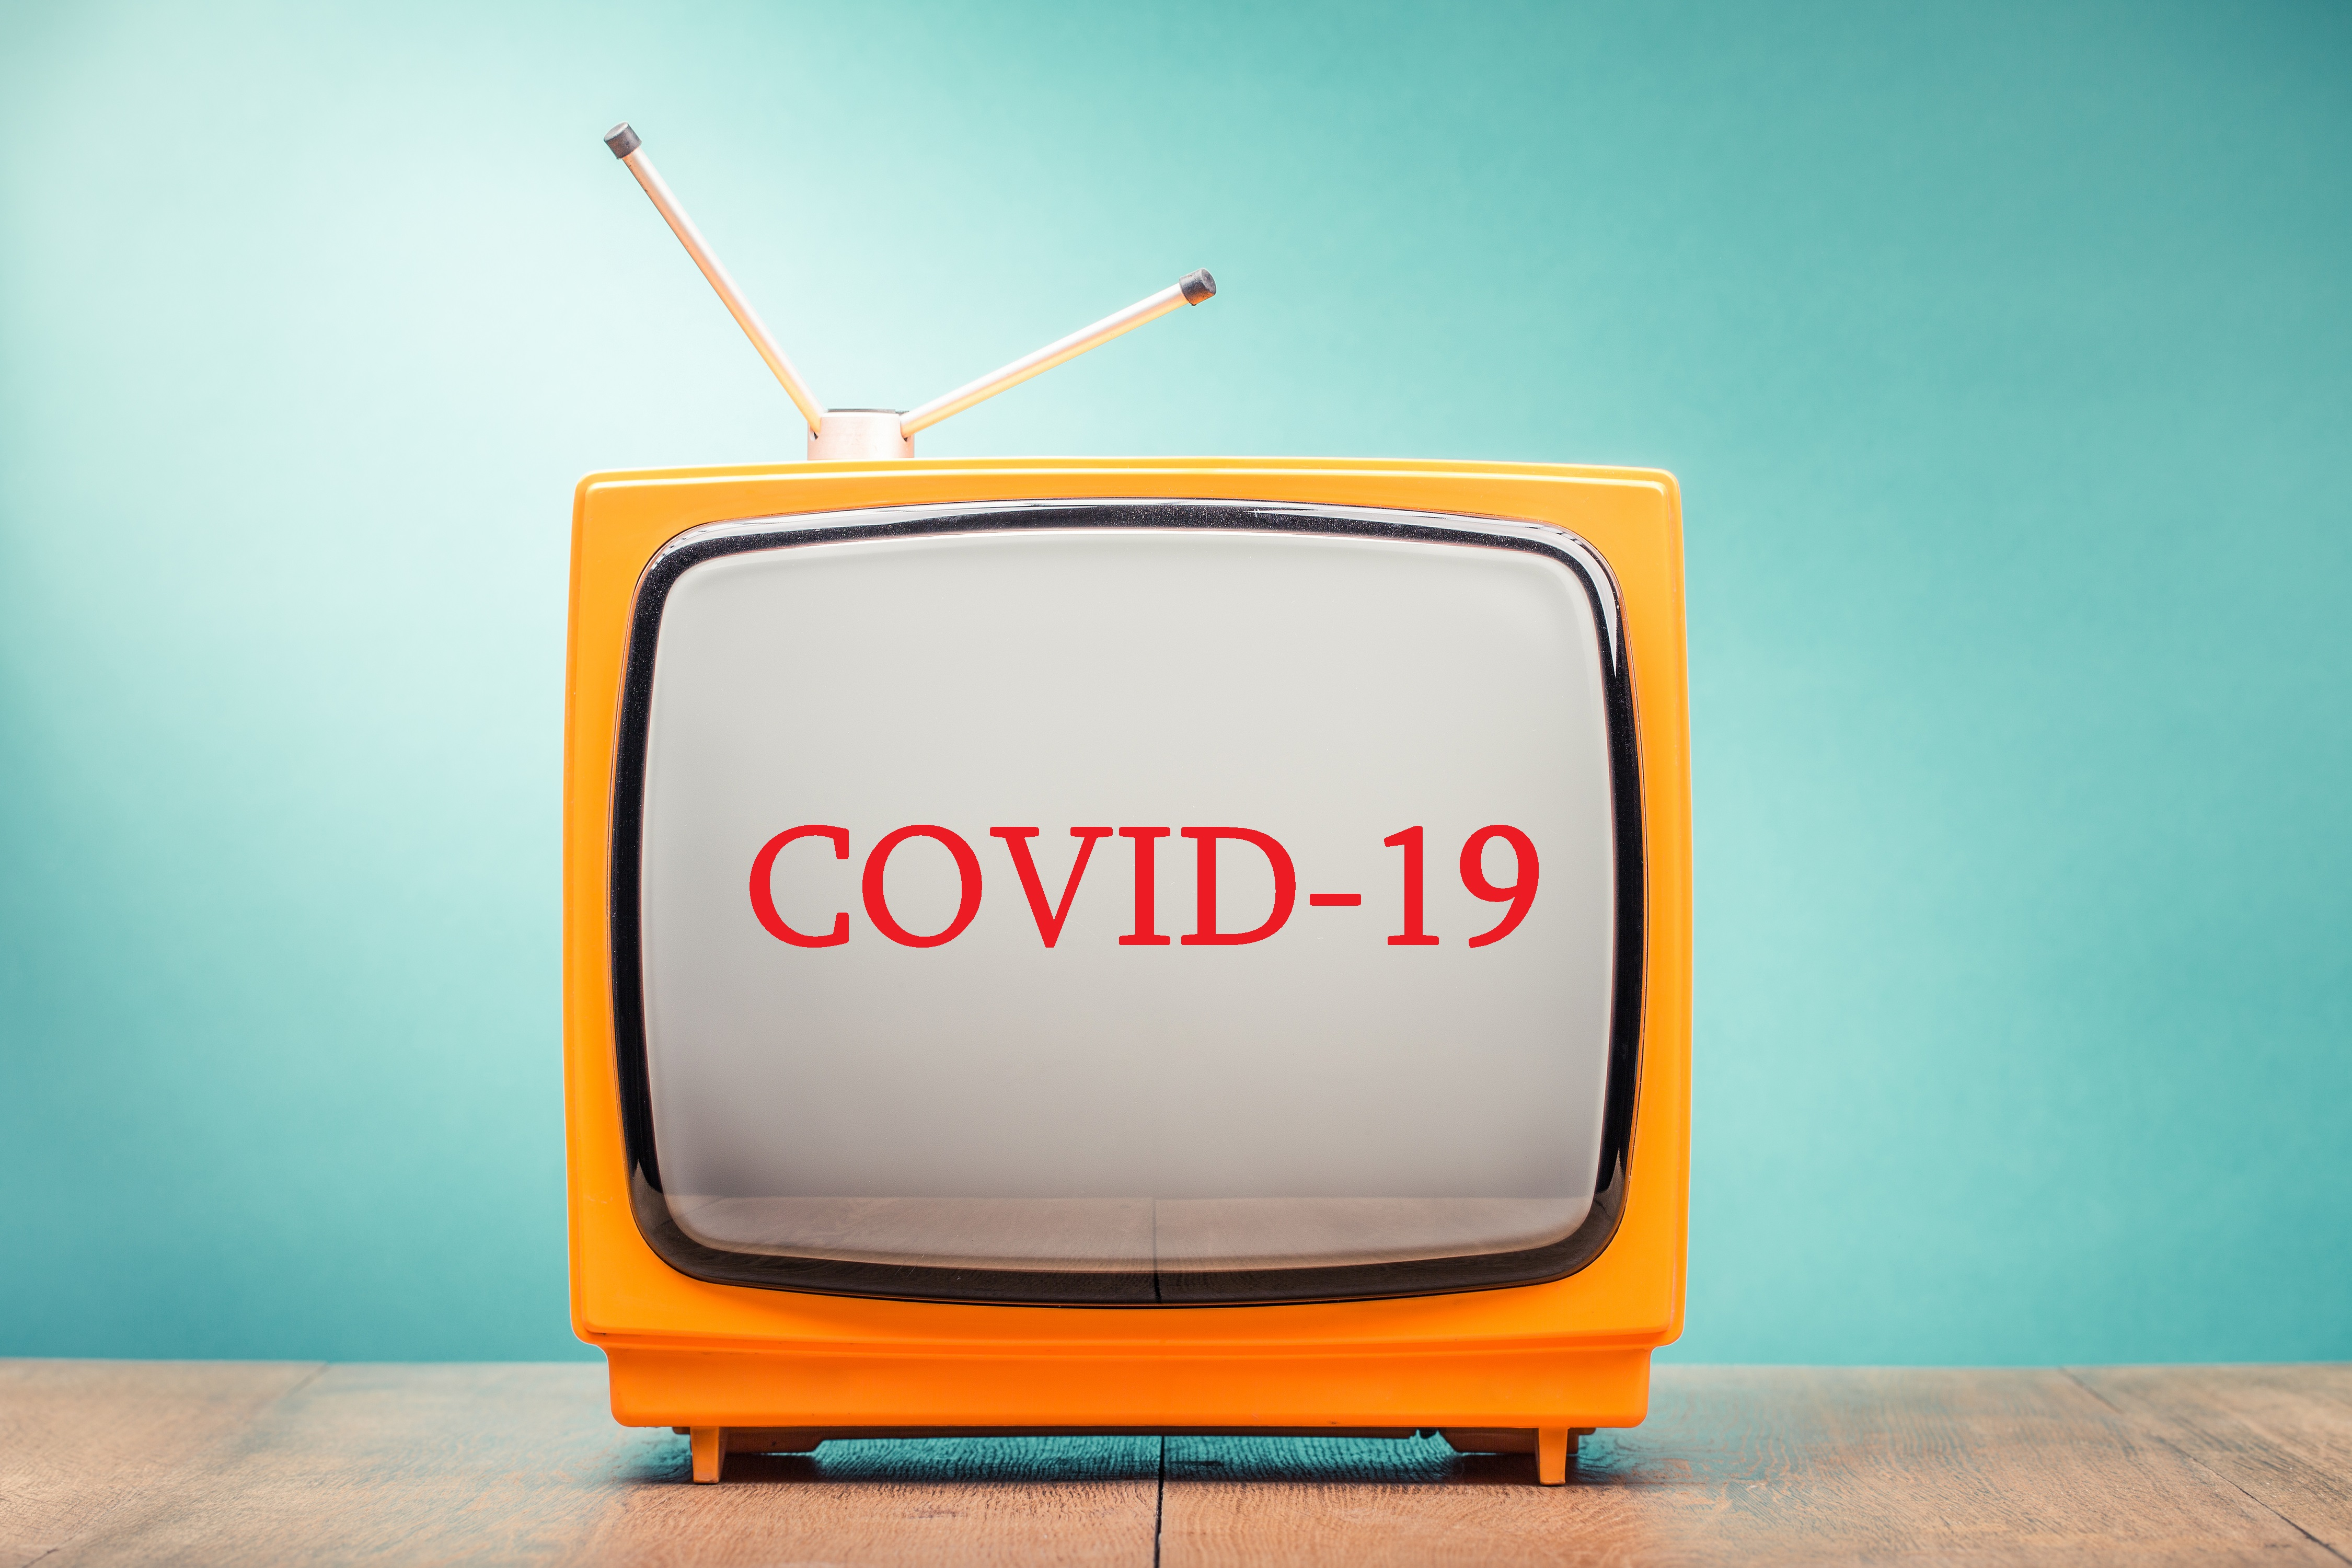 The impact of COVID-19 on TV viewing